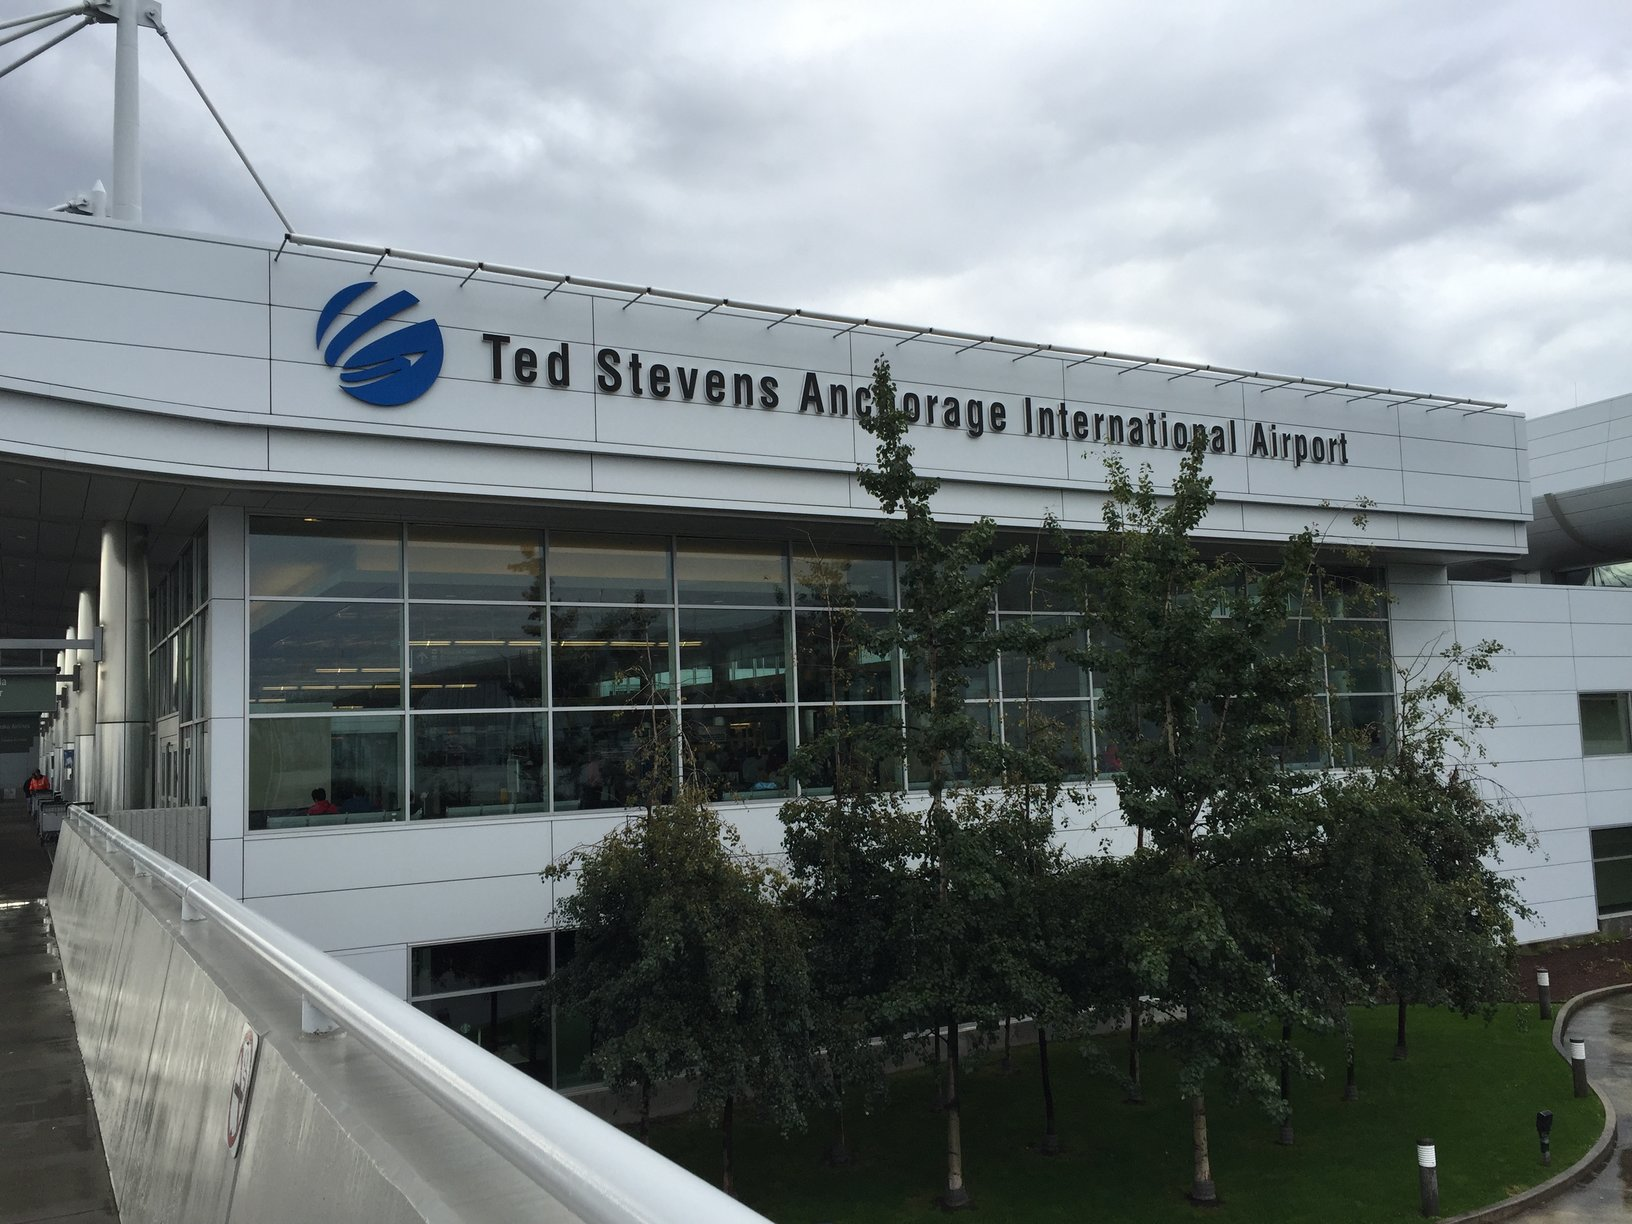 Anchorage Alaska Facts. Anchorage International Airport (now Ted Stevens International) first opened in 1951. AnchorageMemories.com